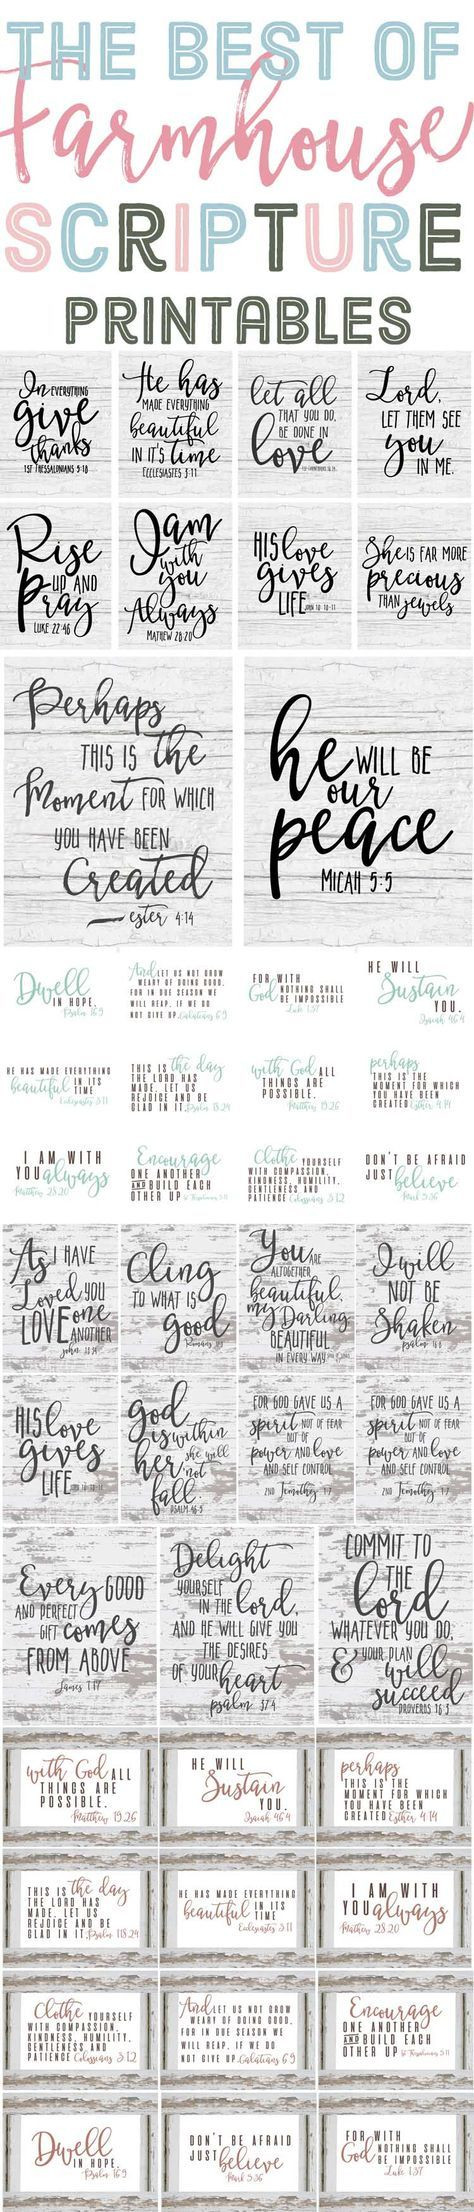 The Best of Free Farmhouse Style Scripture Printables is part of Scripture printables - The best of Farmhouse style scripture printables! Last year I shared many free farmhouse style printables with you guys, like the ones in